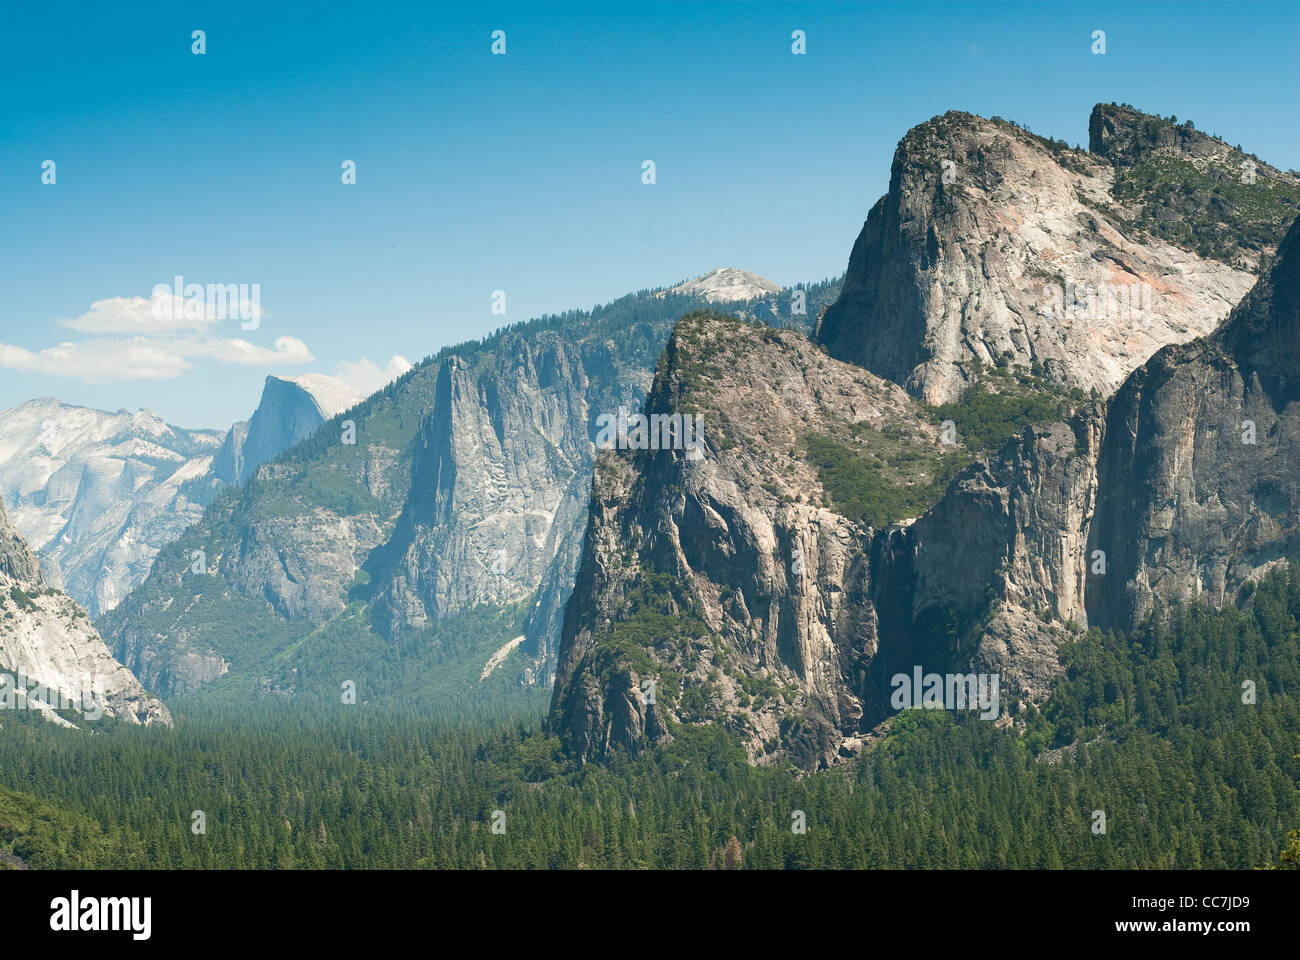 half dom and yosemite valley from tunnel view in yosemite national park, california, usa Stock Photo